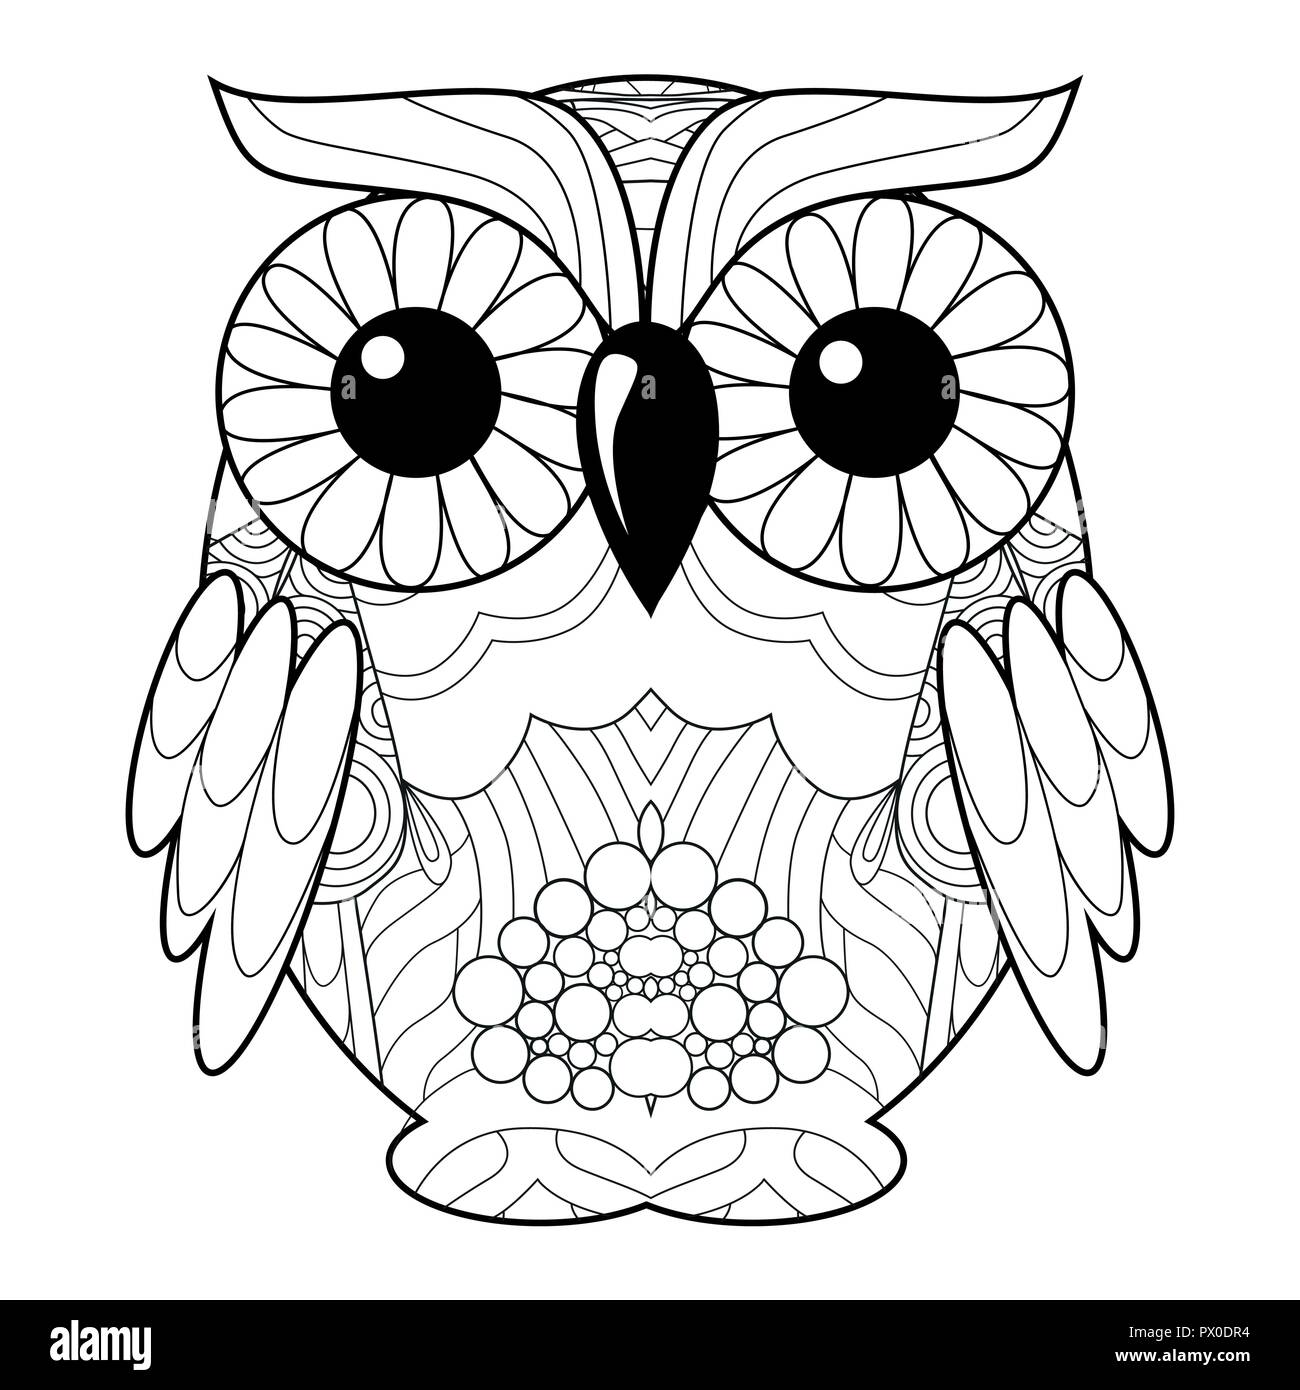 Coloring Book Face Immagini Coloring Book Face Fotos Stock Alamy